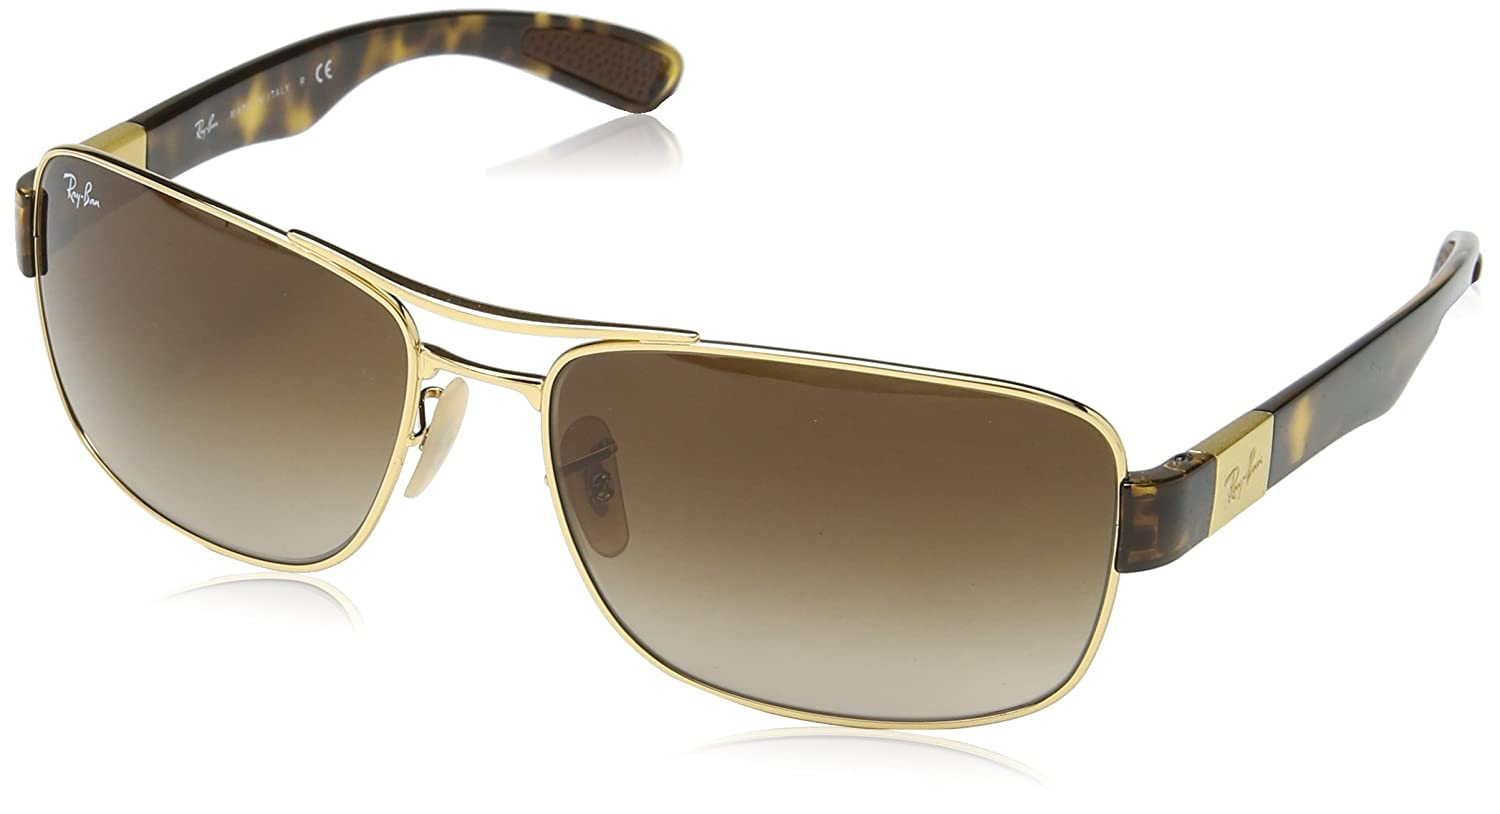 caa4df5180 Amazon.com  Ray-Ban RB 3522 Sunglasses  Clothing